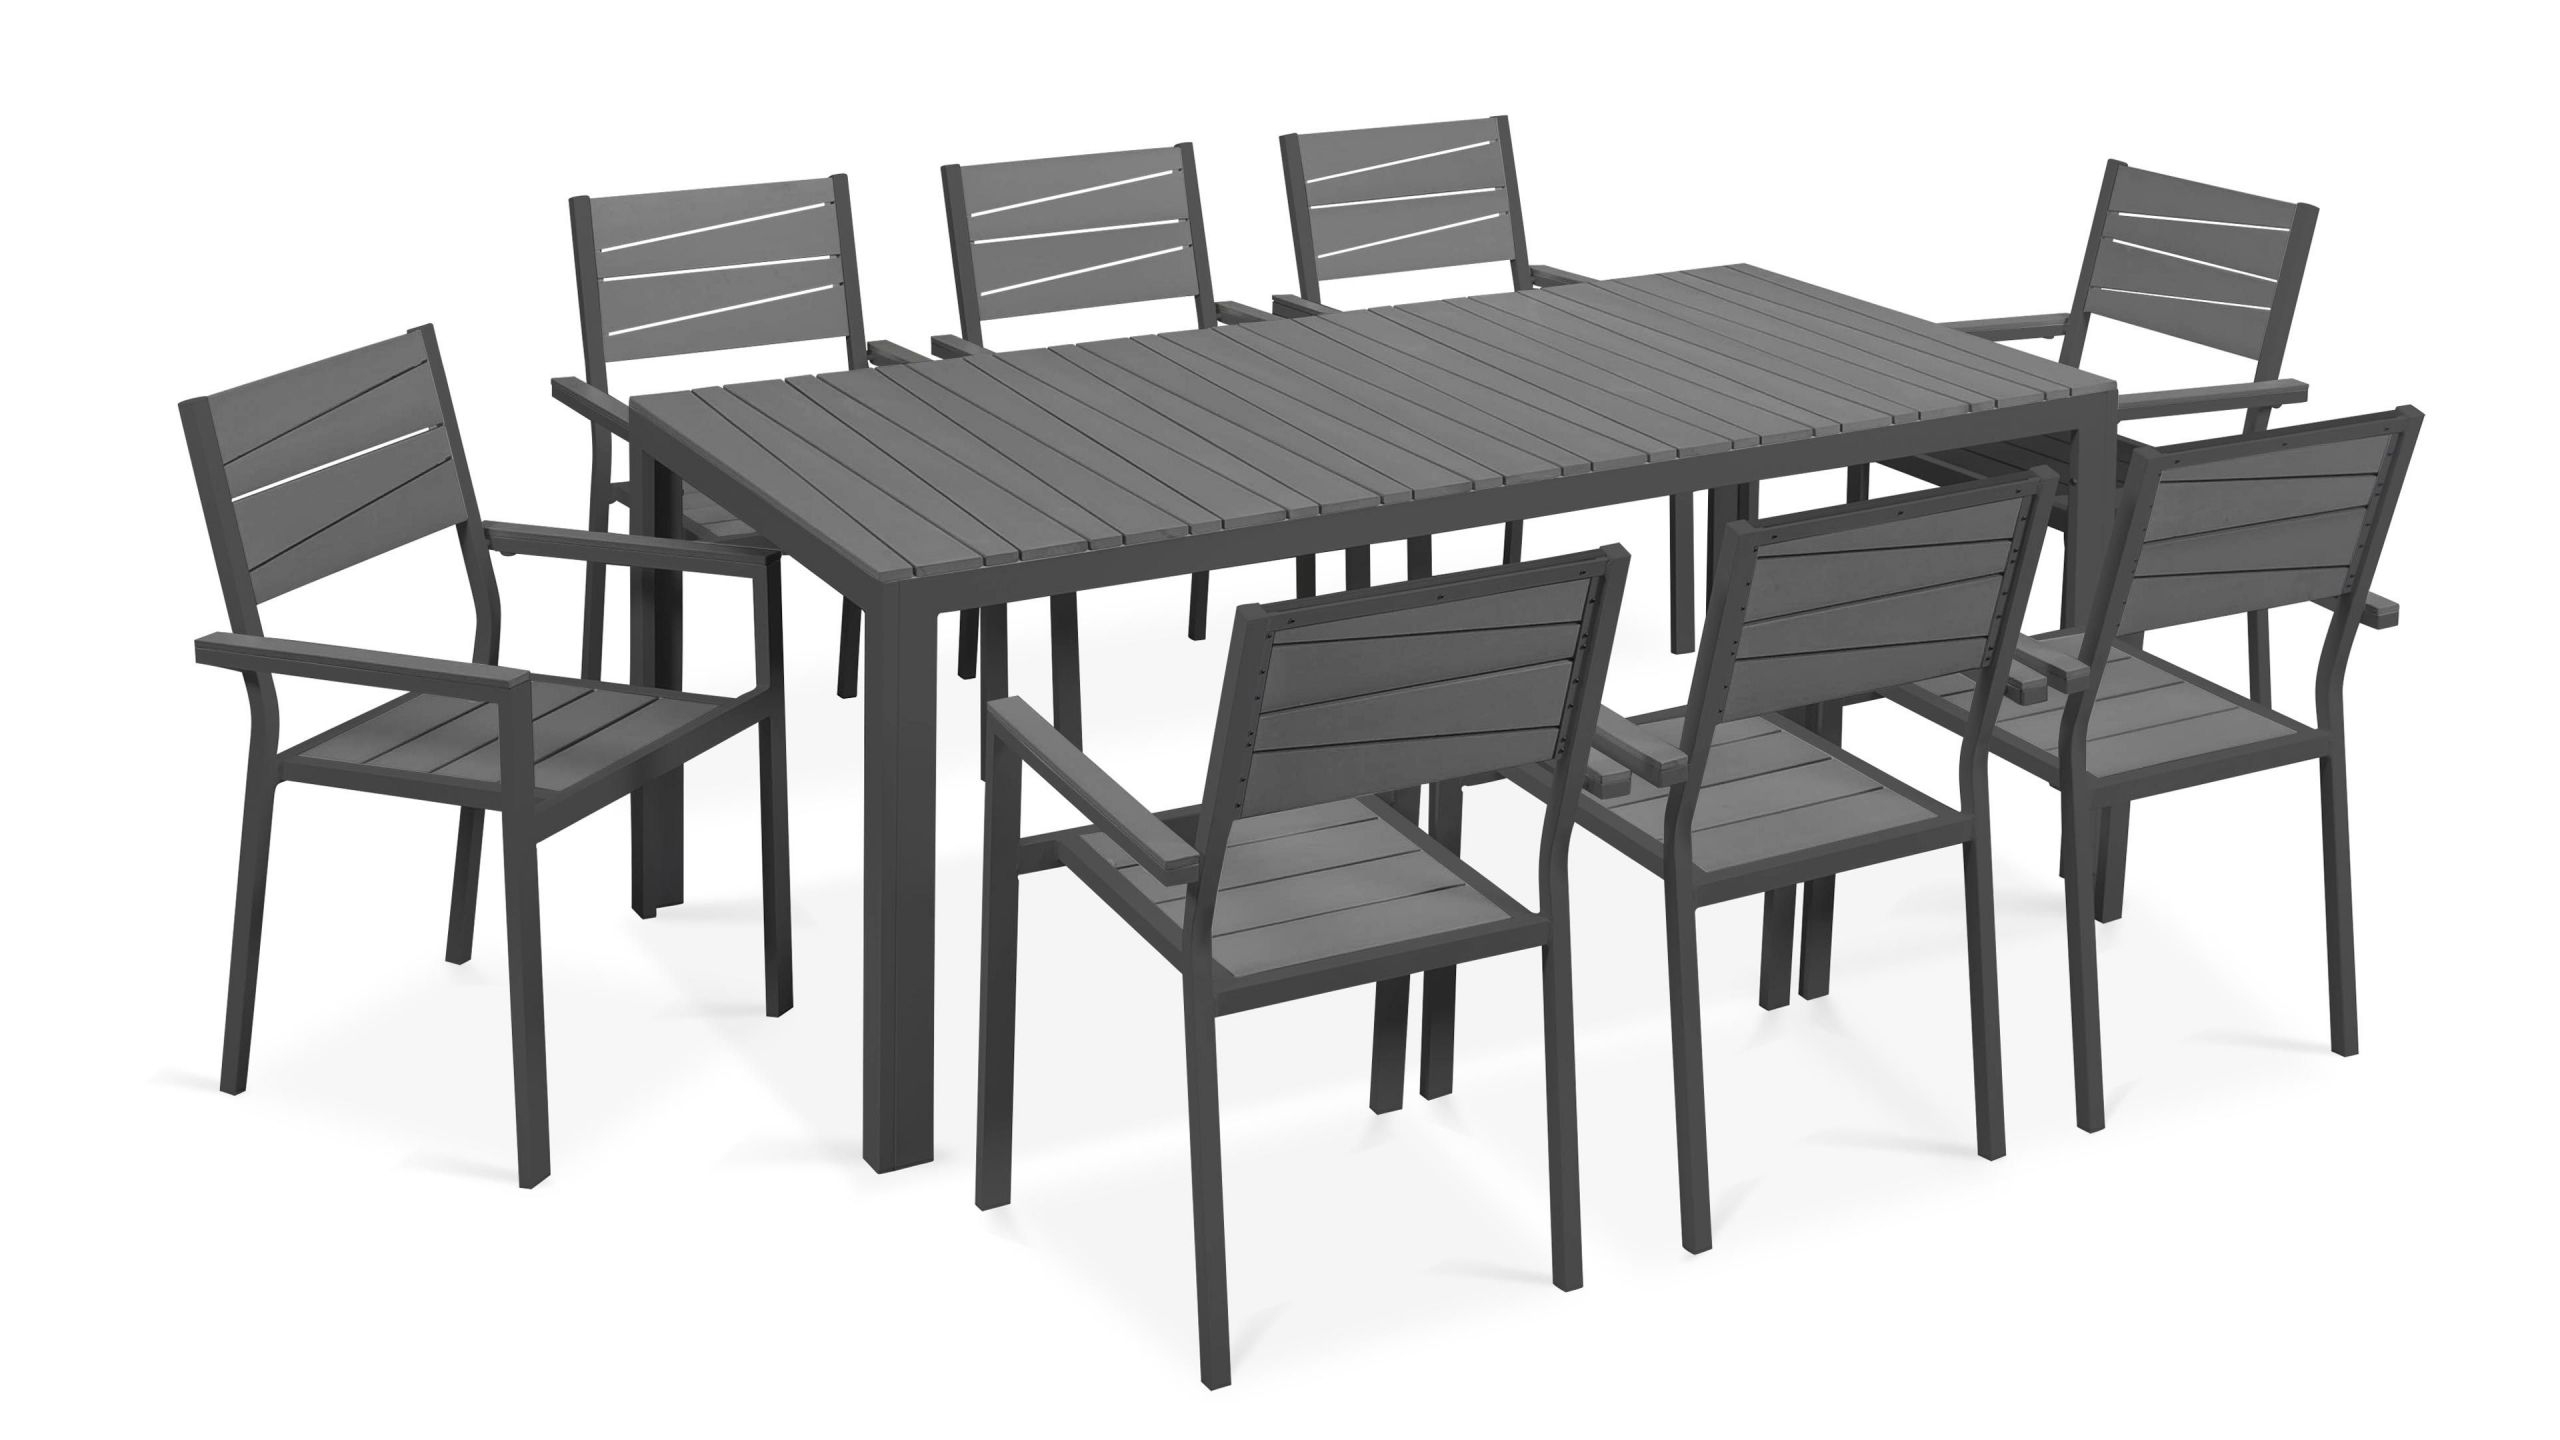 Table De Jardin En Aluminium Schème - Idees Conception Jardin serapportantà Table De Jardin Carrée 8 Personnes